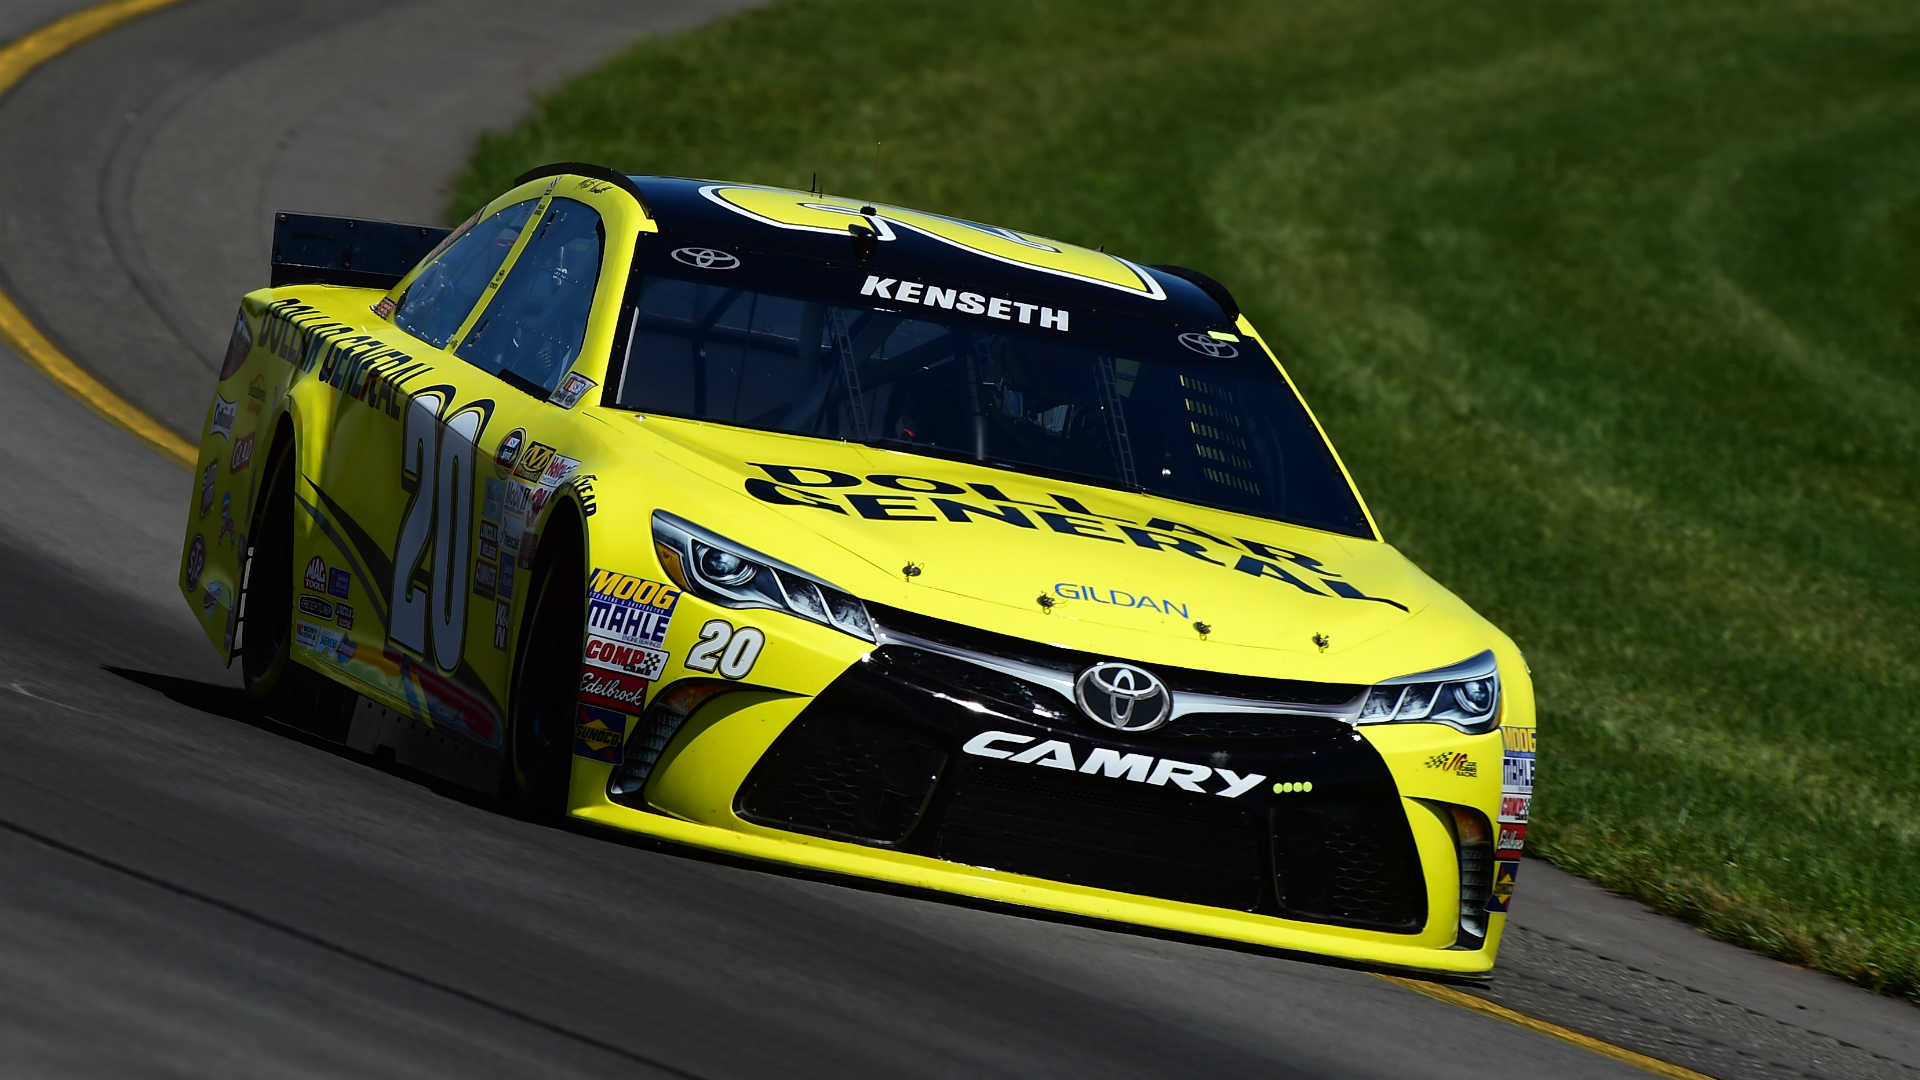 Matt Kenseth steals win on last lap at Pocono